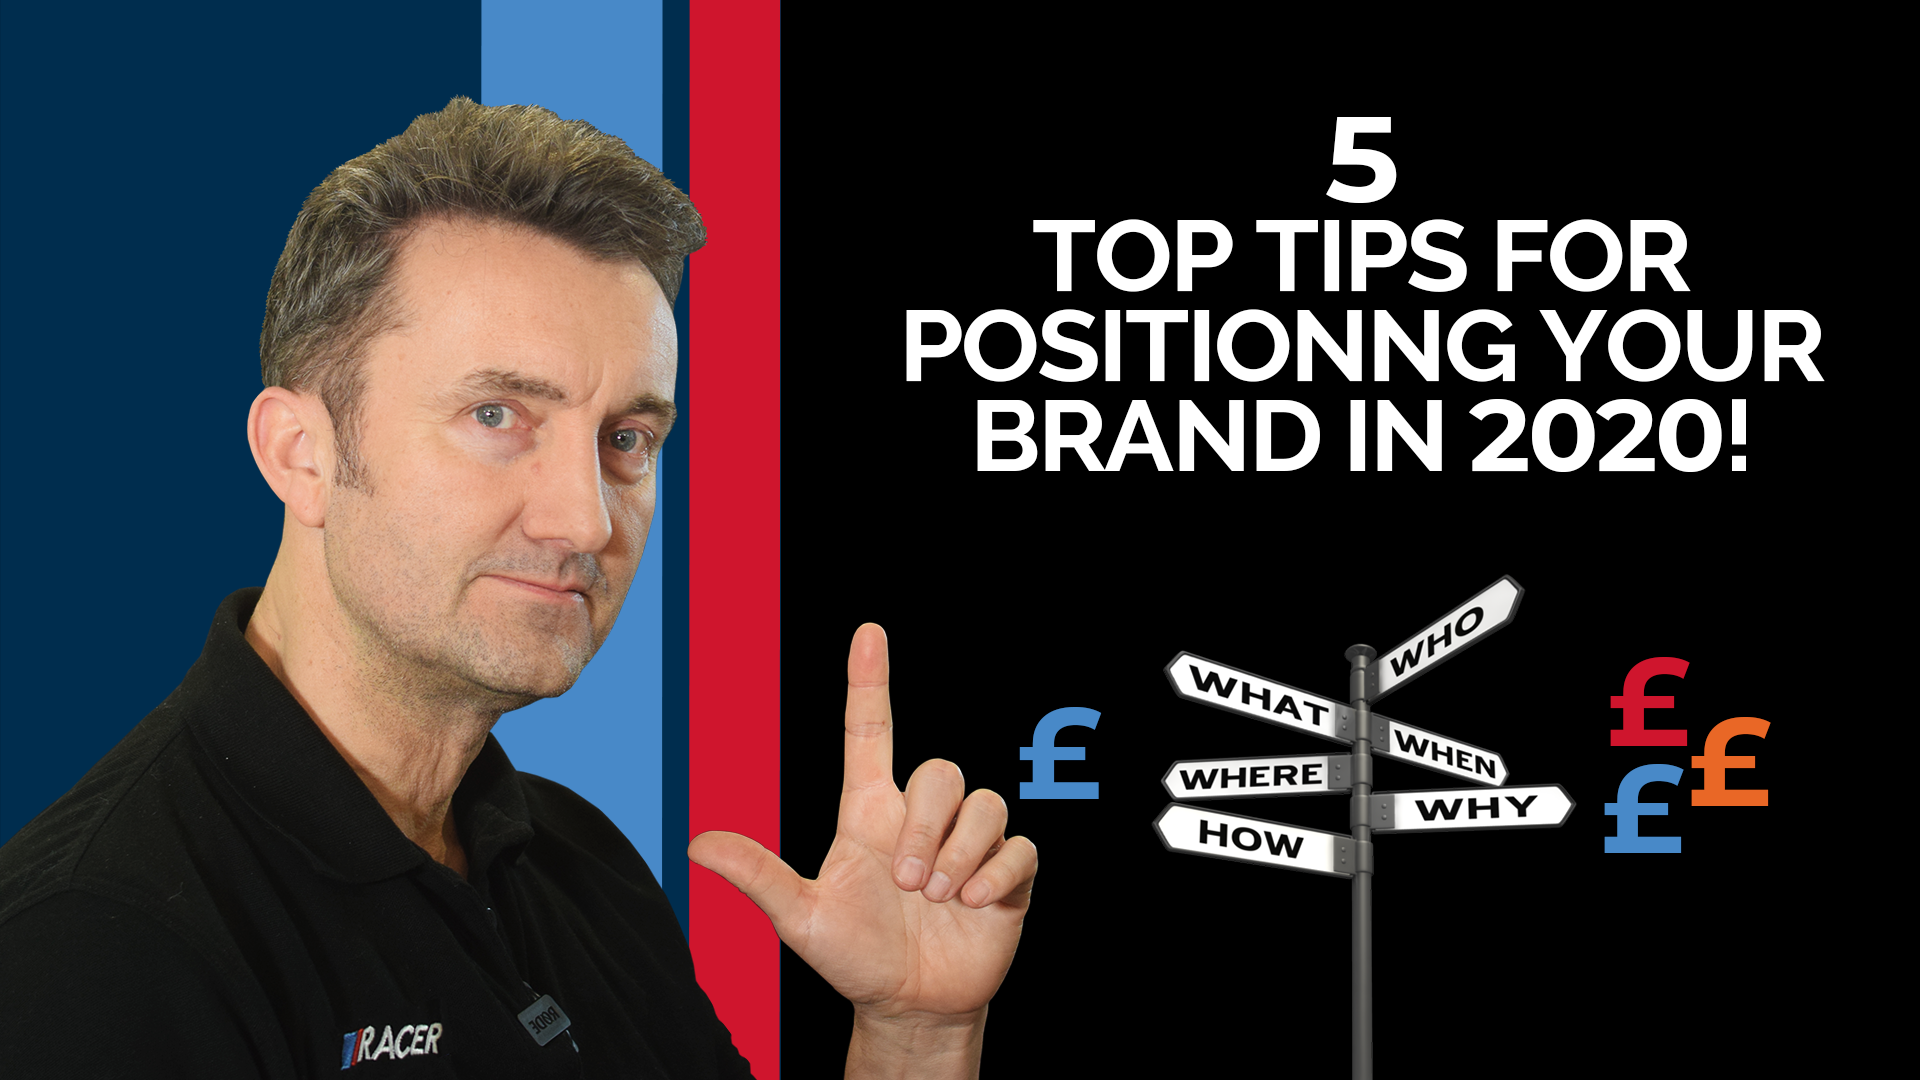 5 Top Tips for Positioning Your Brand in 2020!